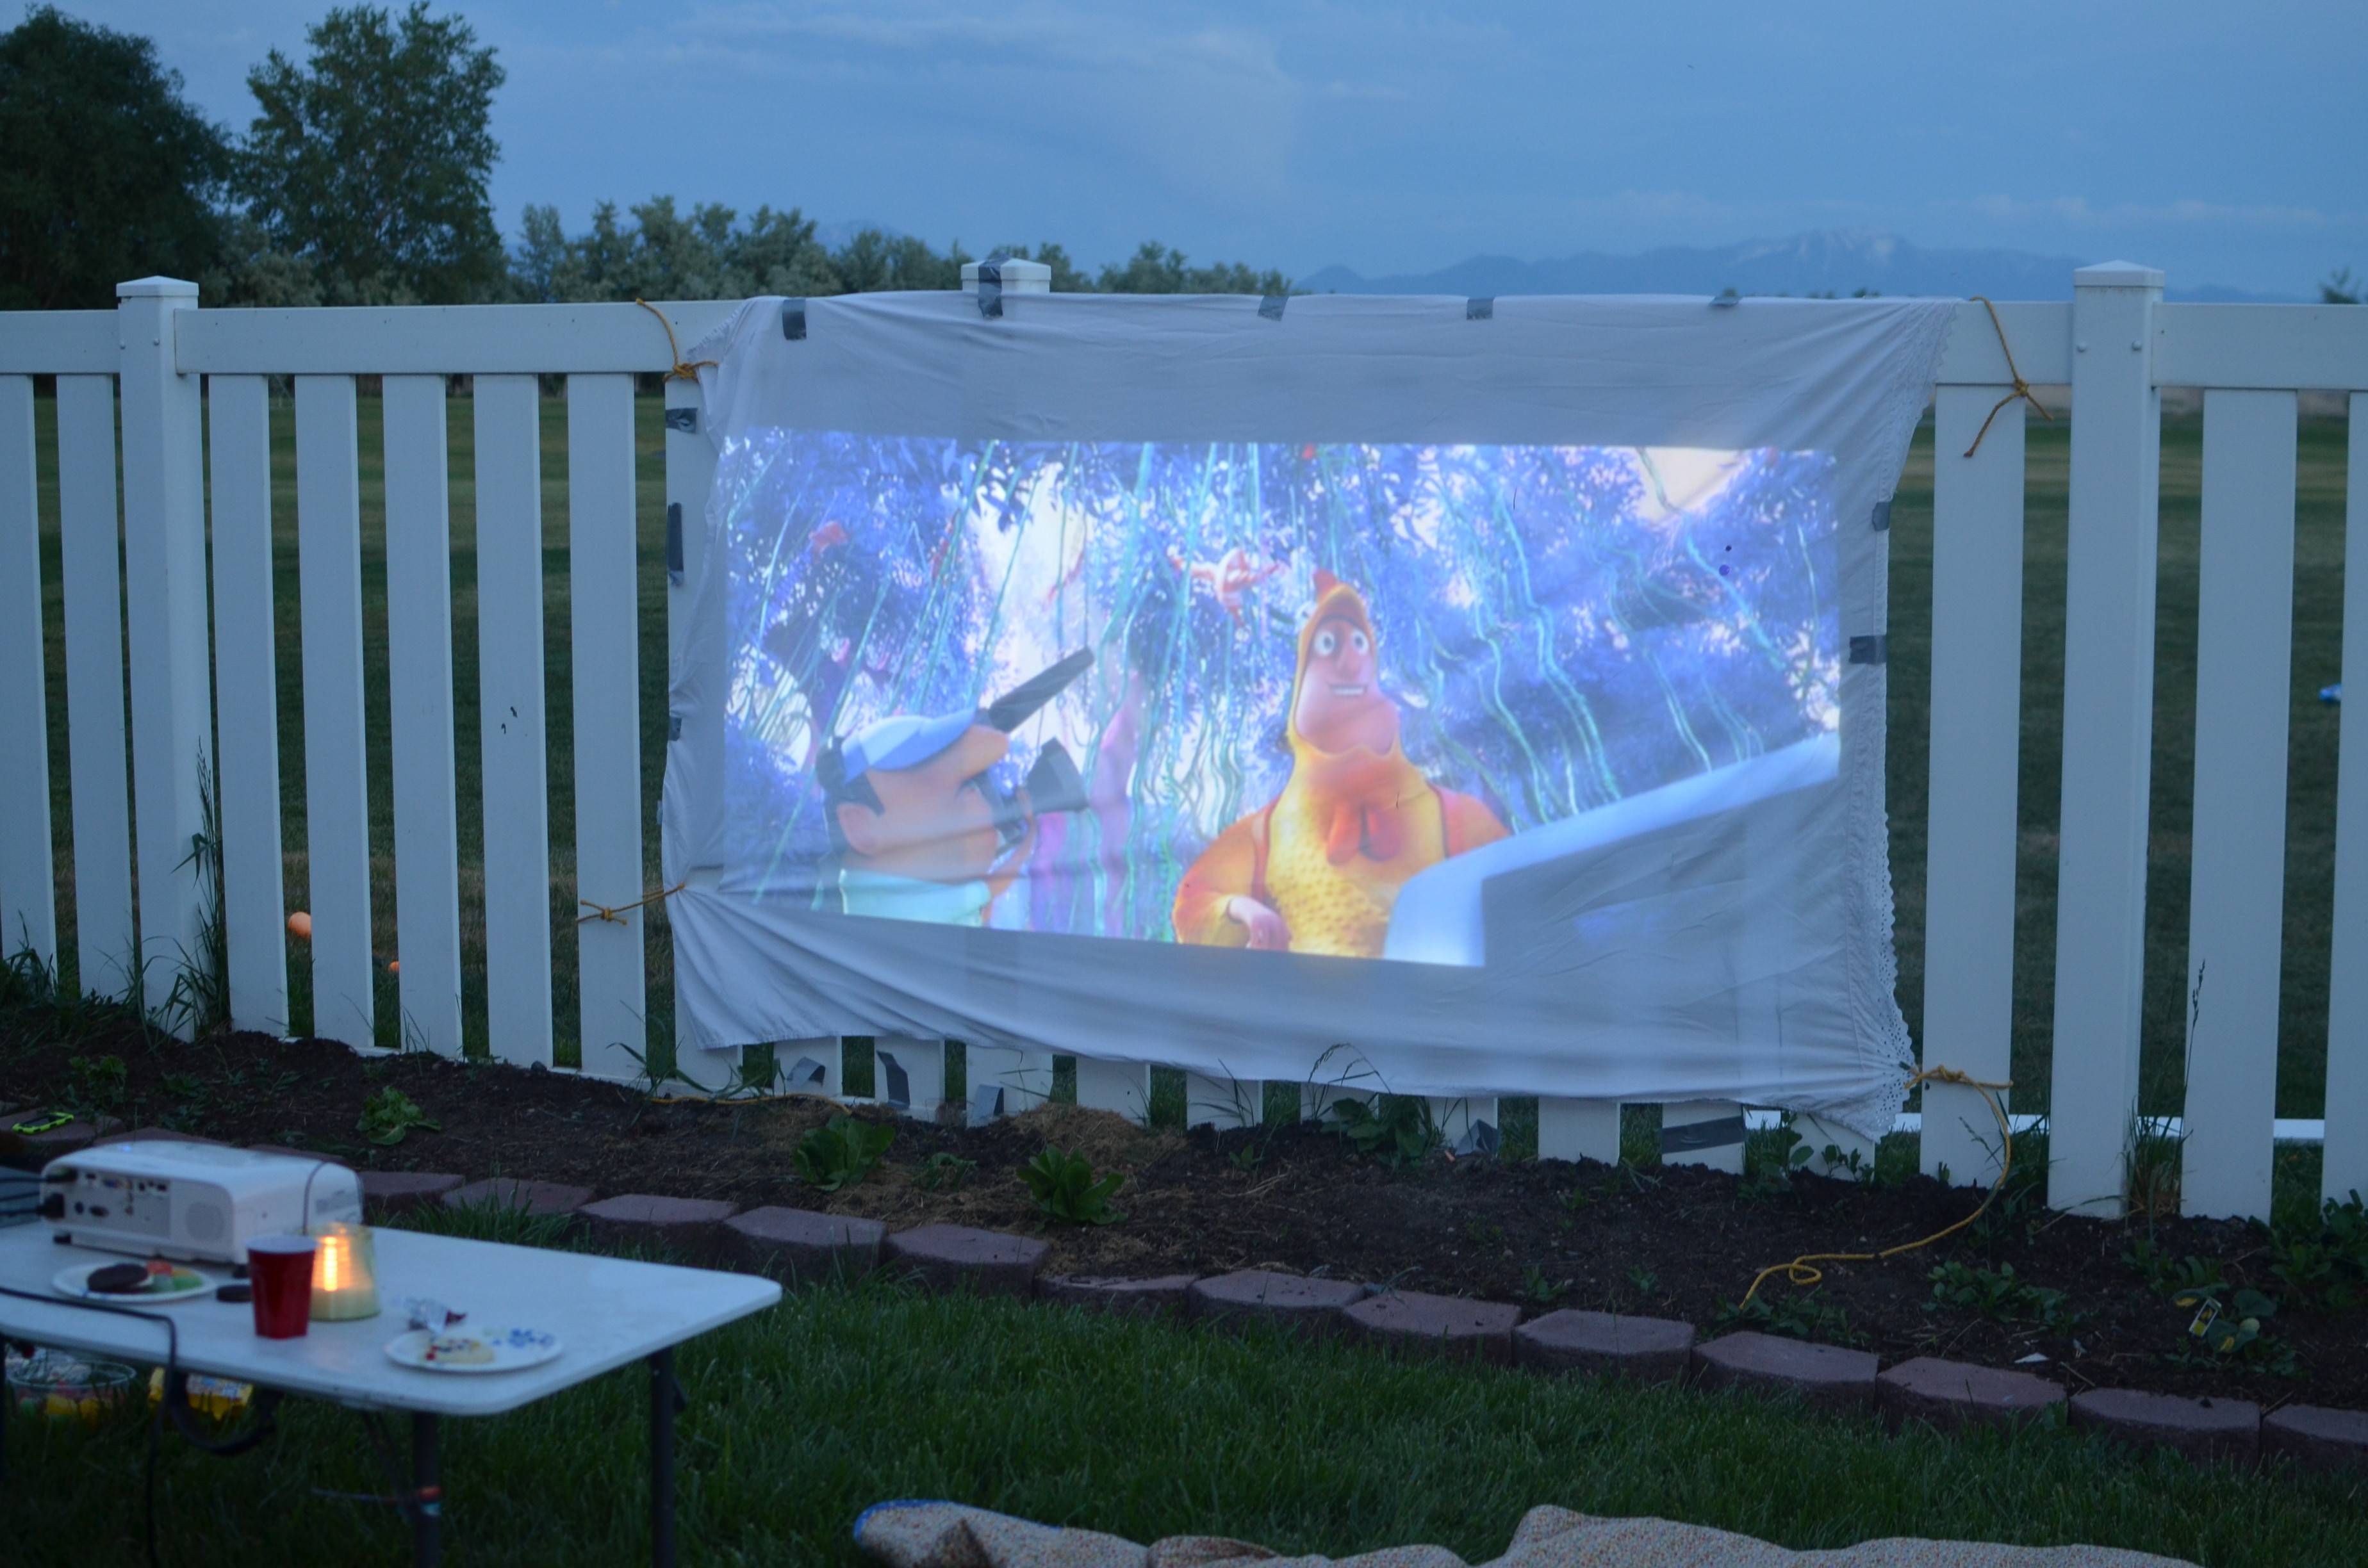 Best ideas about DIY Portable Projection Screen . Save or Pin DIY Portable Projector Screen with Epson Projector Now.